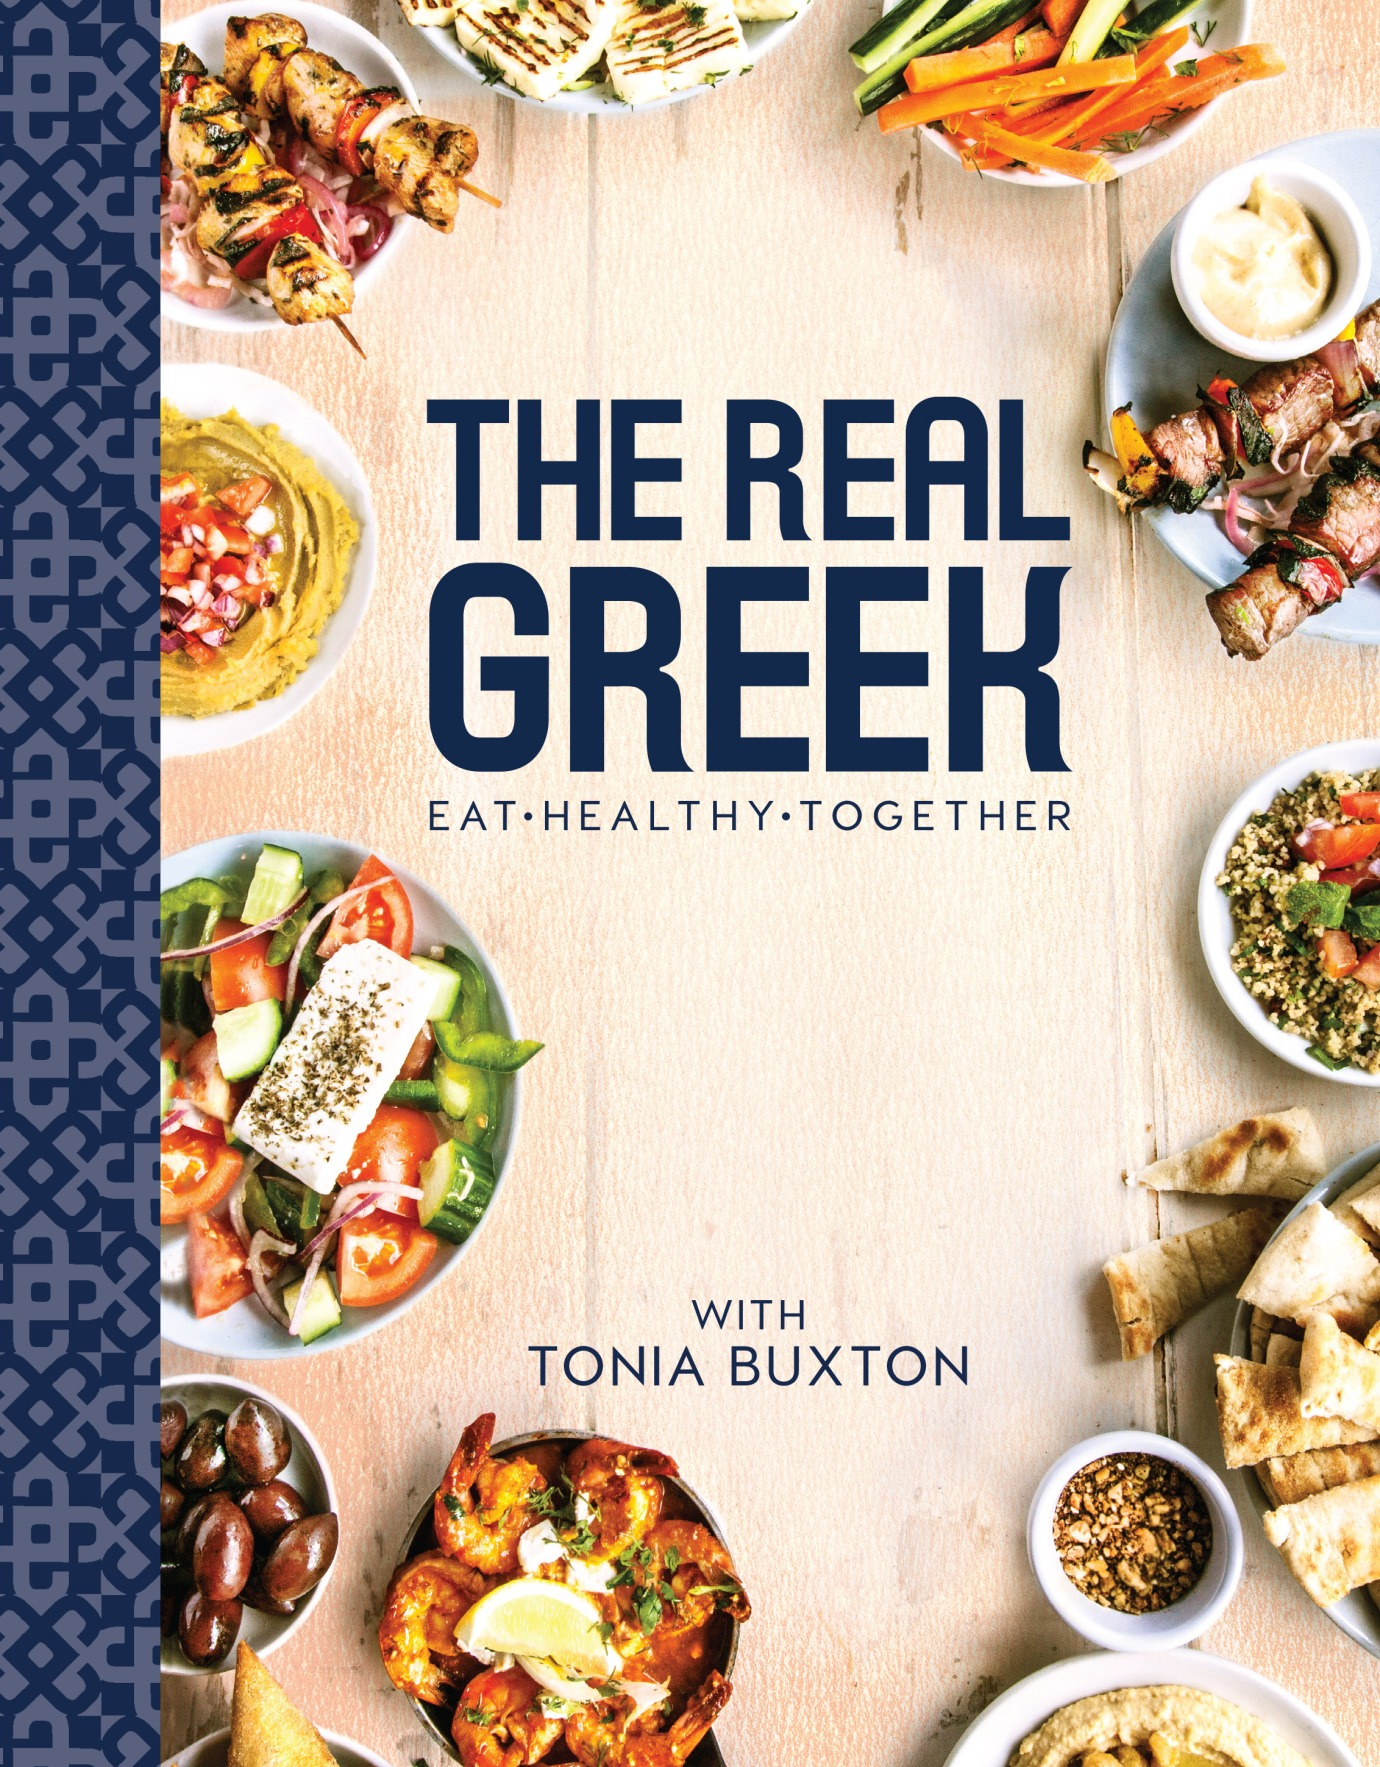 The Real Greek Cookbook with Tonia Buxton